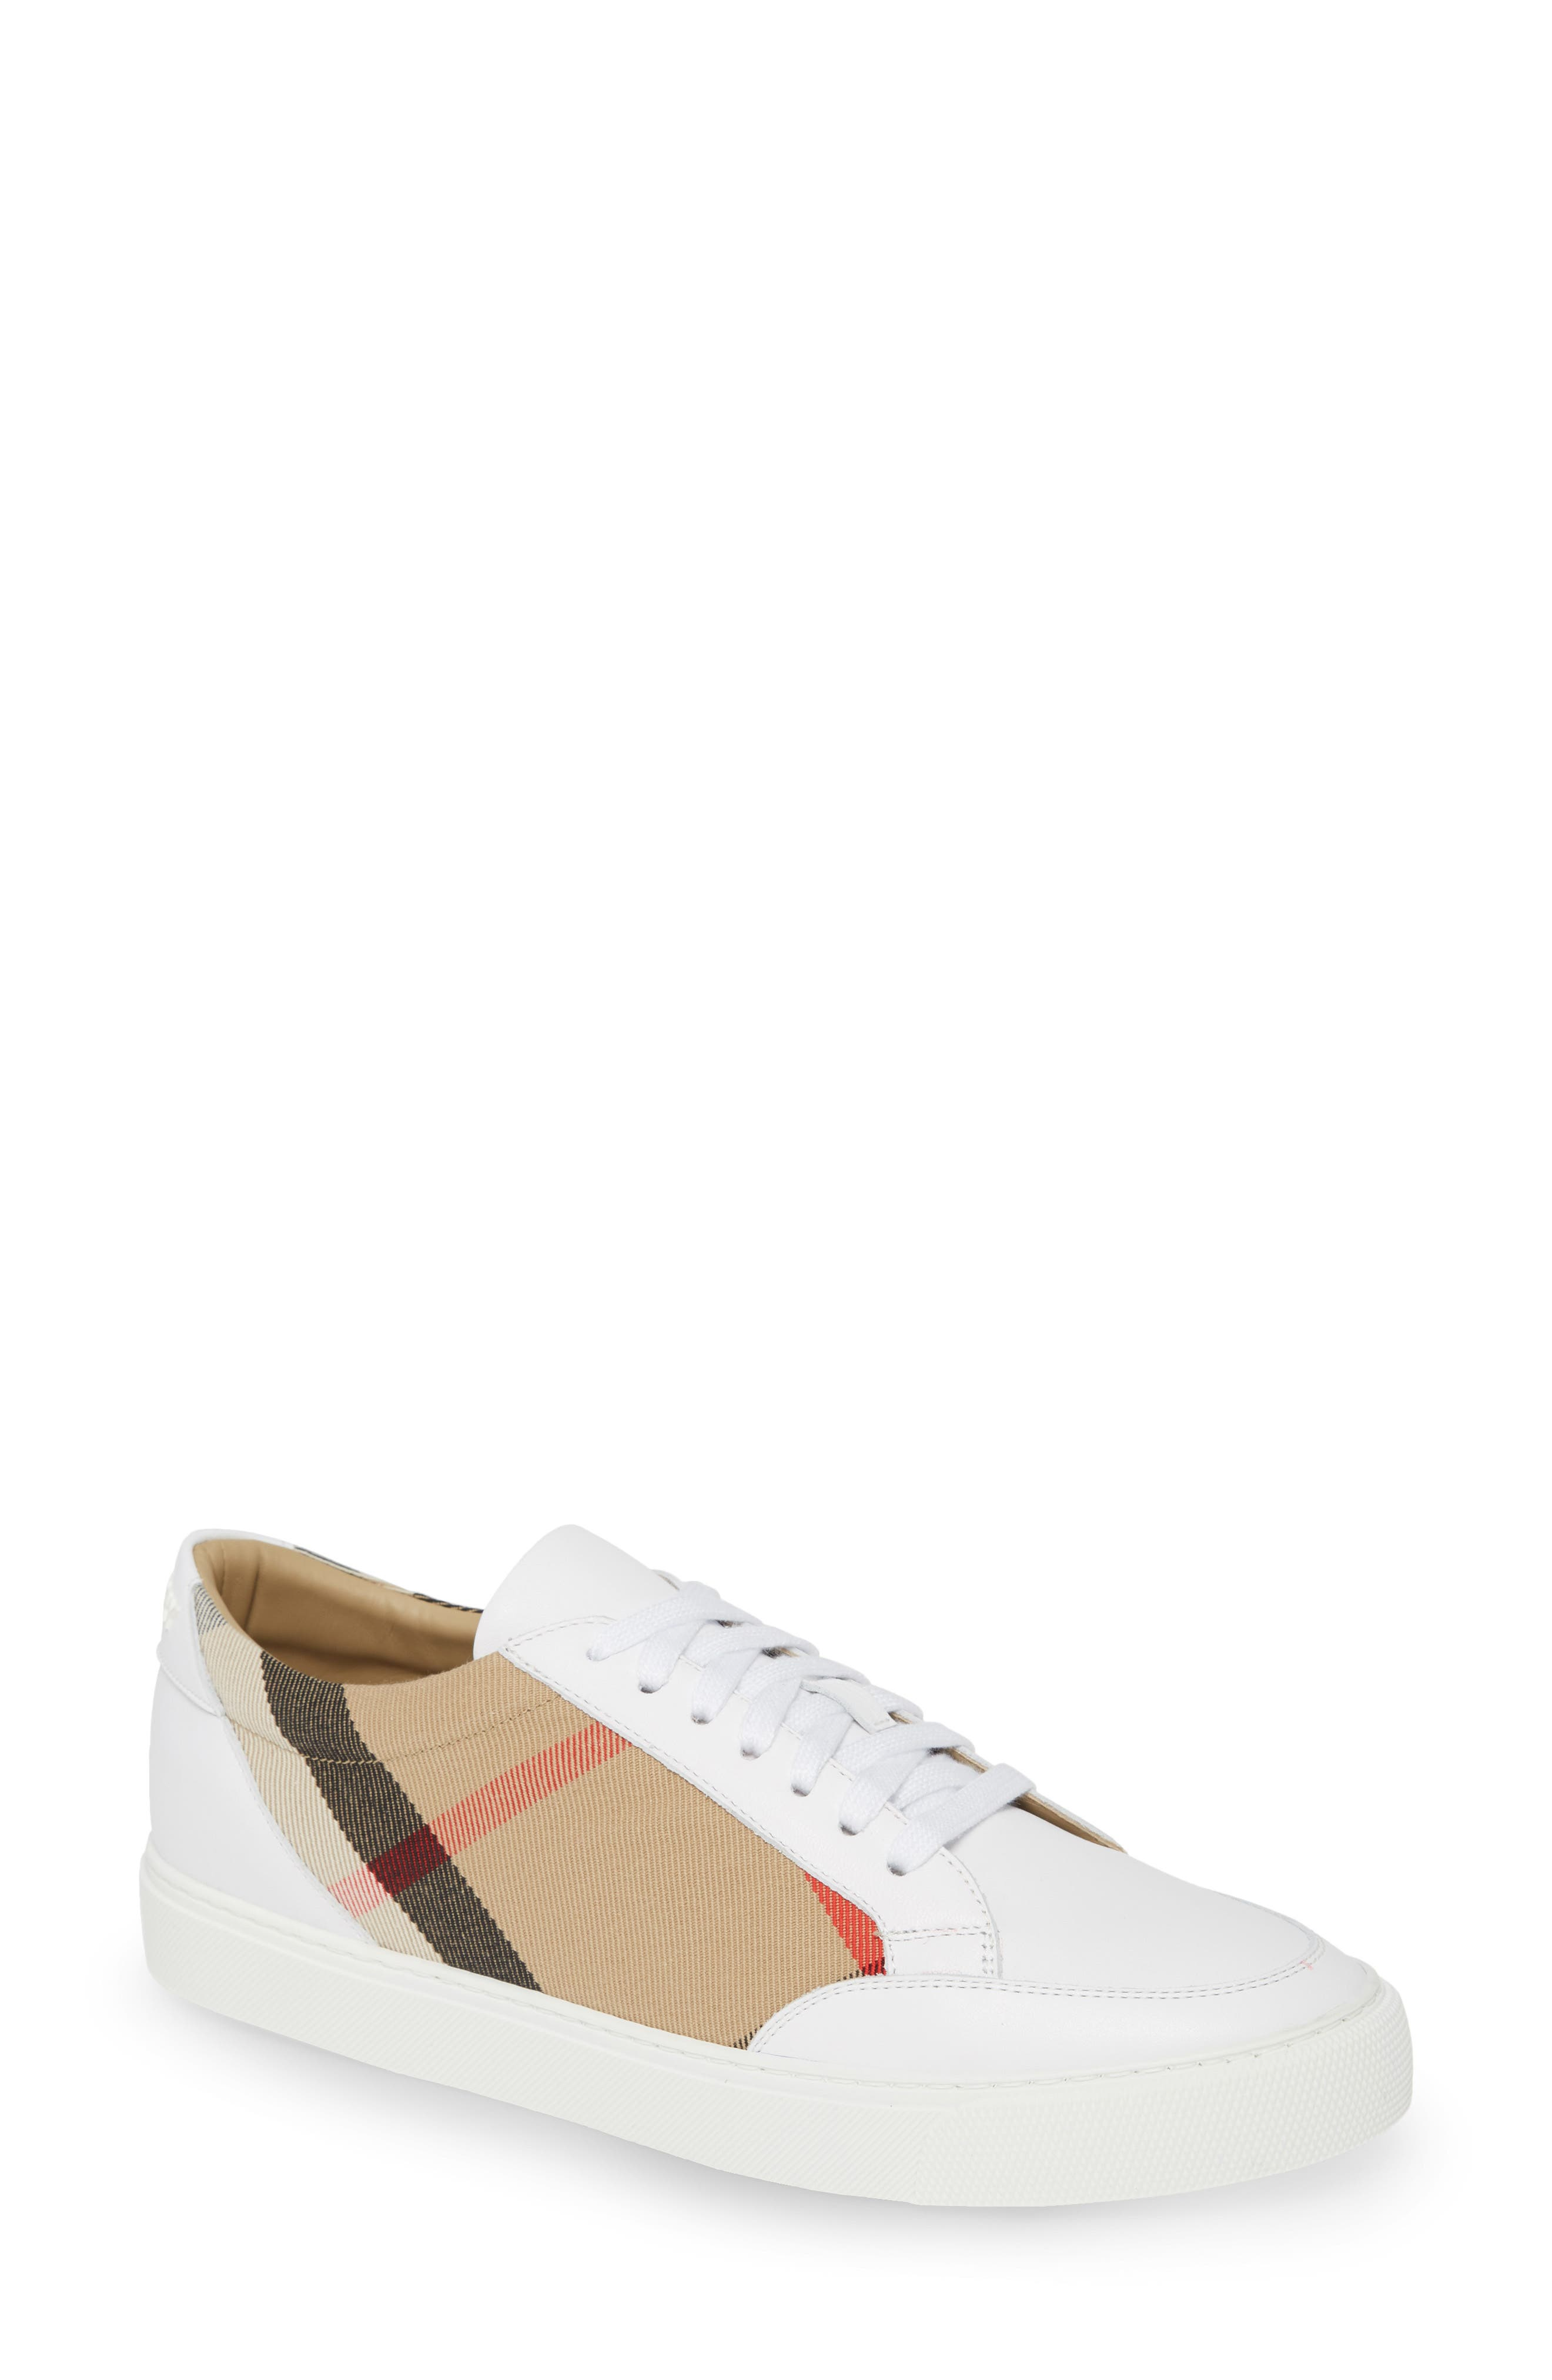 Burberry Salmond Check Low Top Sneaker